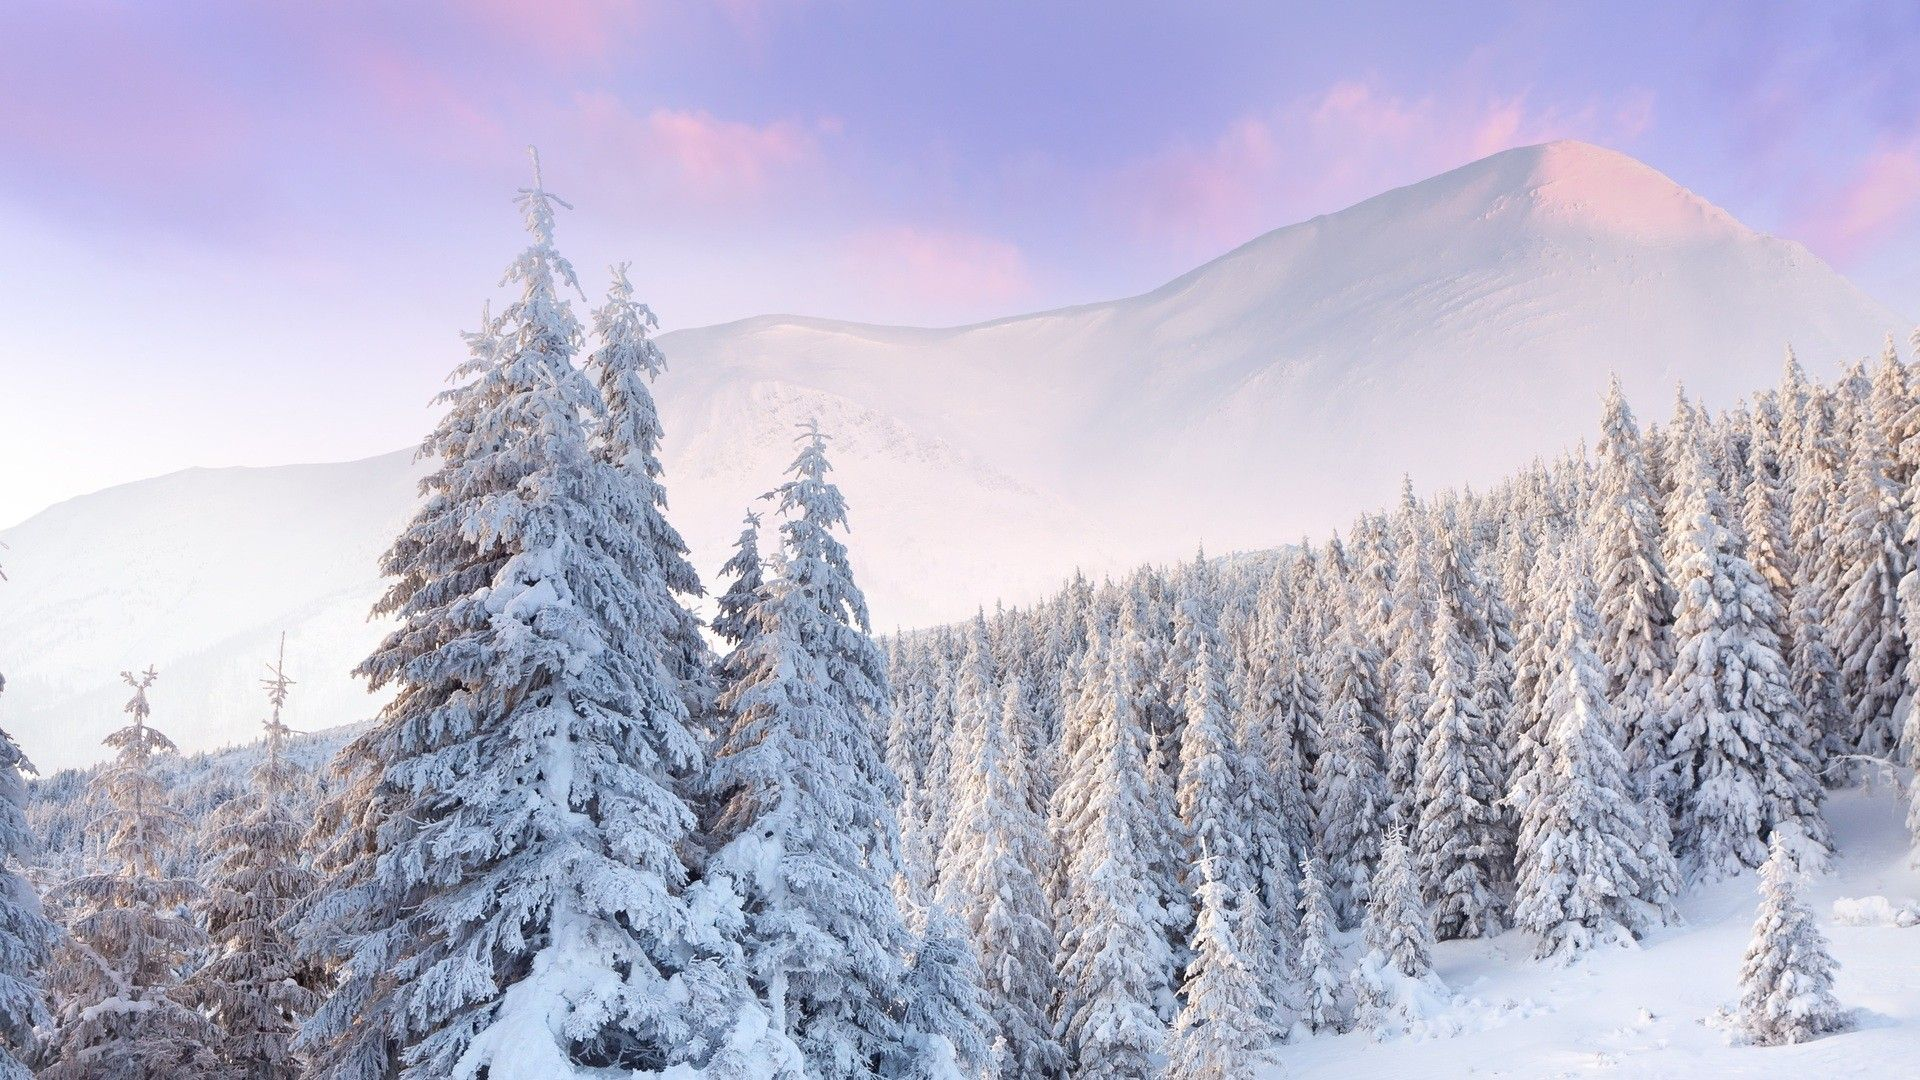 Pristine Snow 4k Wallpapers Top Free Pristine Snow 4k Backgrounds Wallpaperaccess